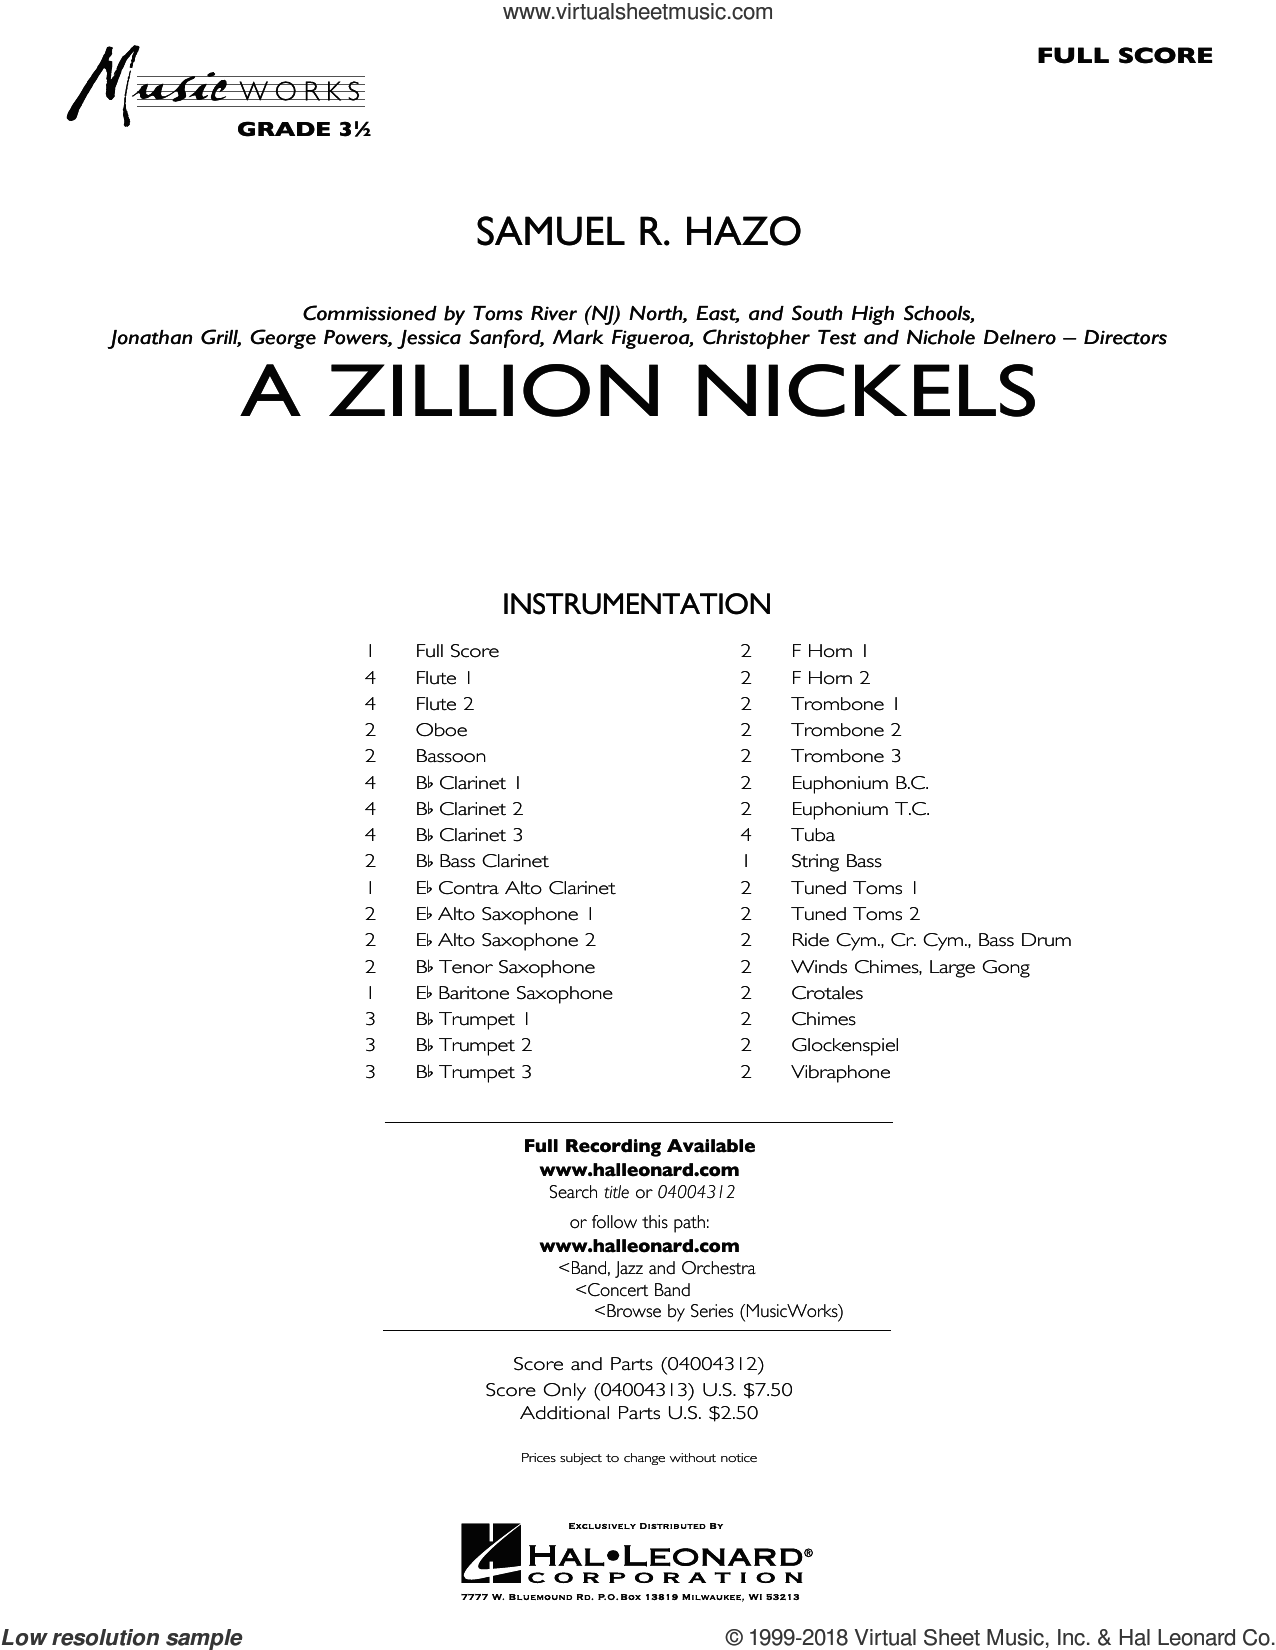 A Zillion Nickels (COMPLETE) sheet music for concert band by Samuel R. Hazo, intermediate